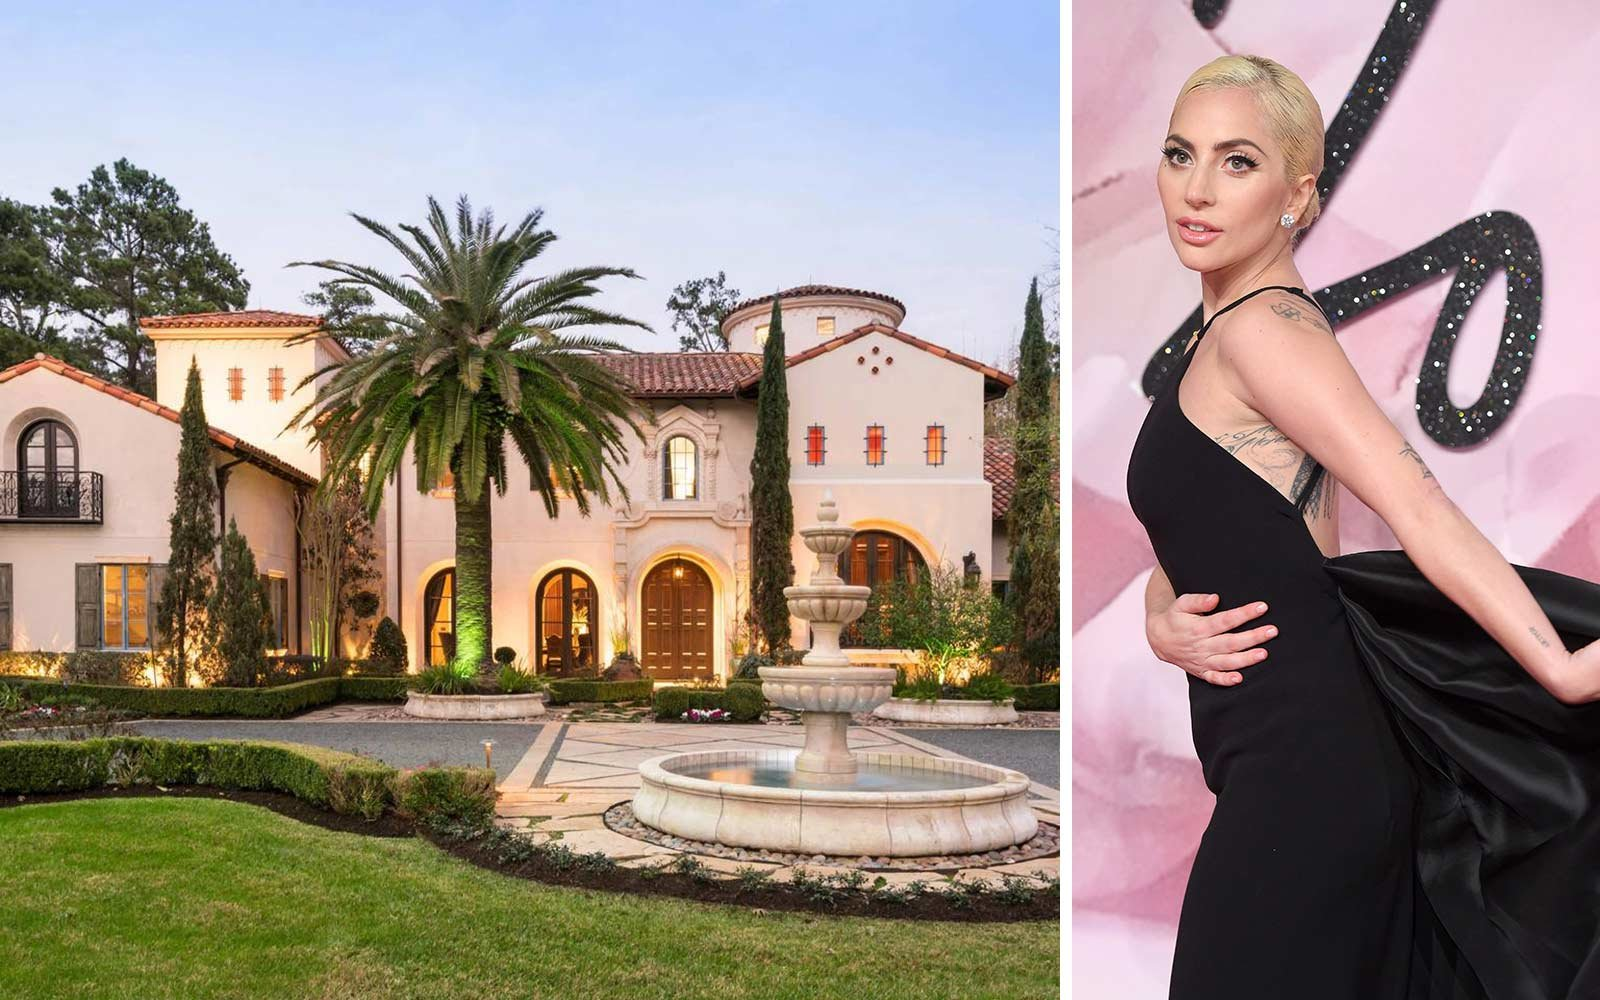 The Houston mansion where Lady Gaga stayed